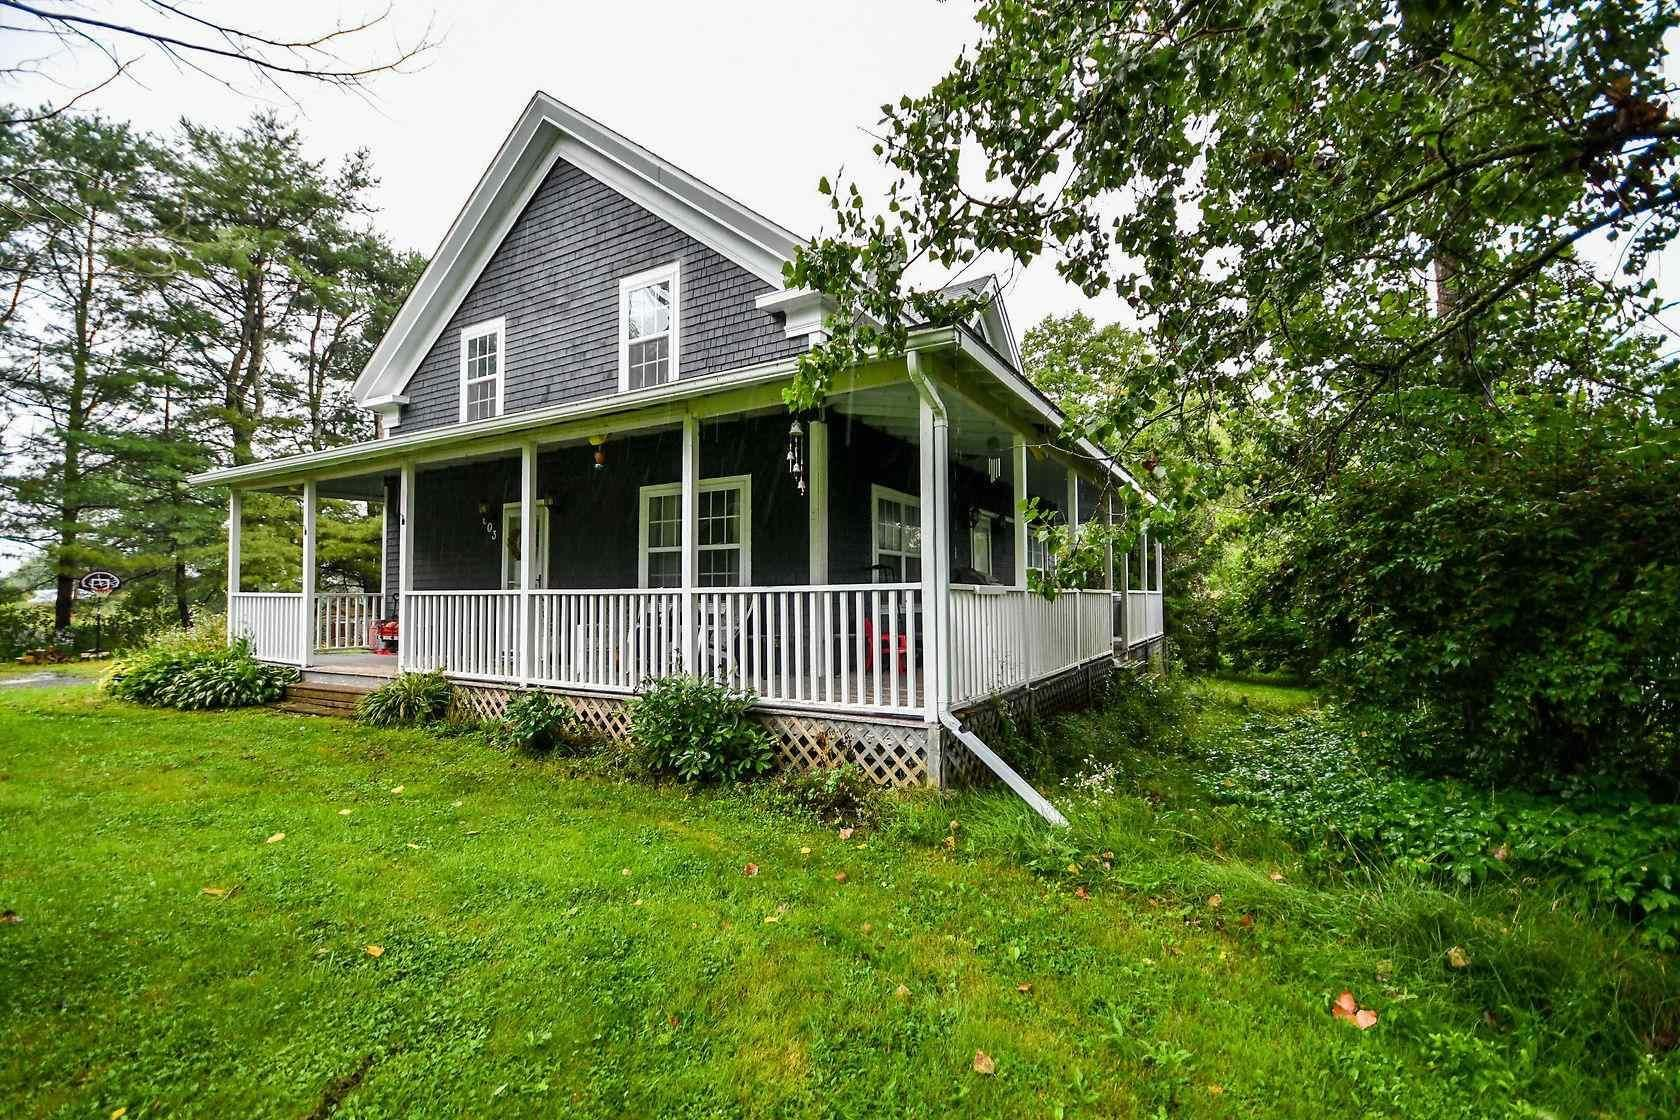 Main Photo: 603 Ashdale Road in Ashdale: 403-Hants County Residential for sale (Annapolis Valley)  : MLS®# 202121681